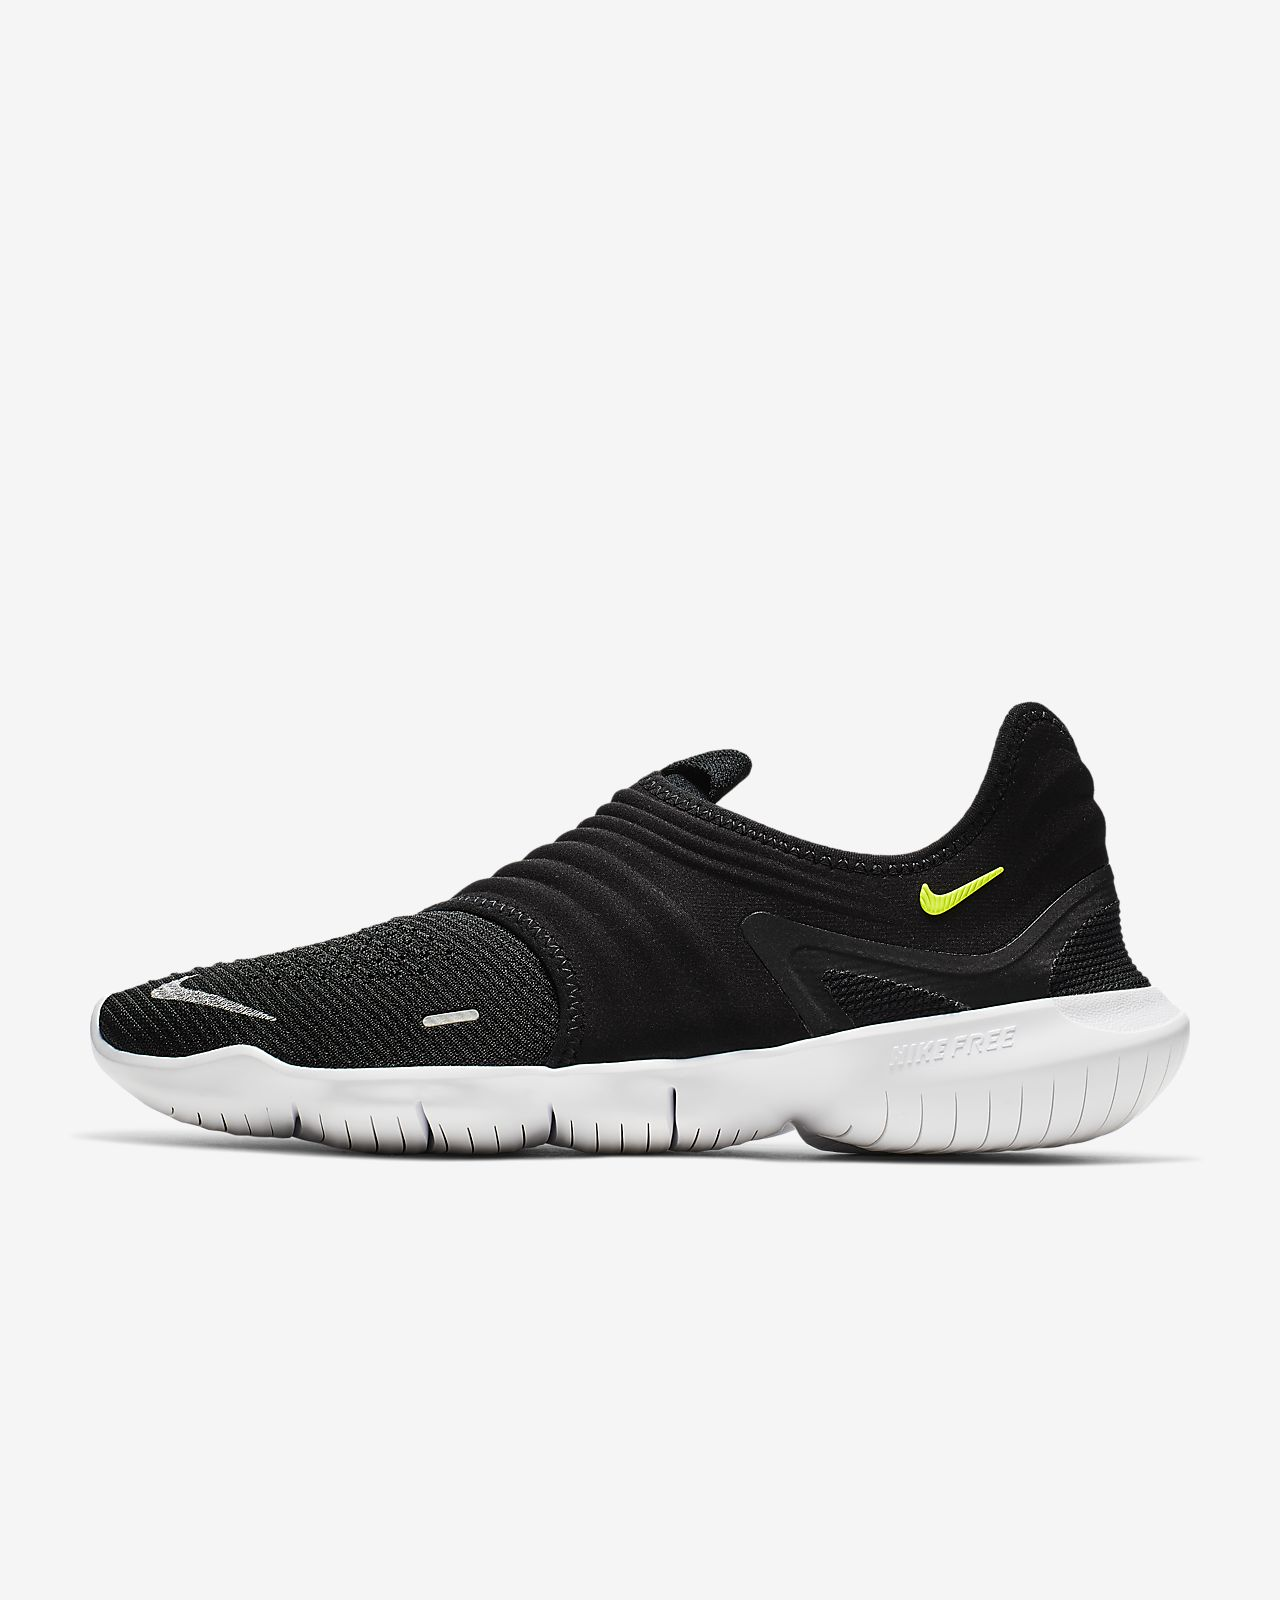 Nike Free RN Flyknit 3.0 Men's Running Shoe